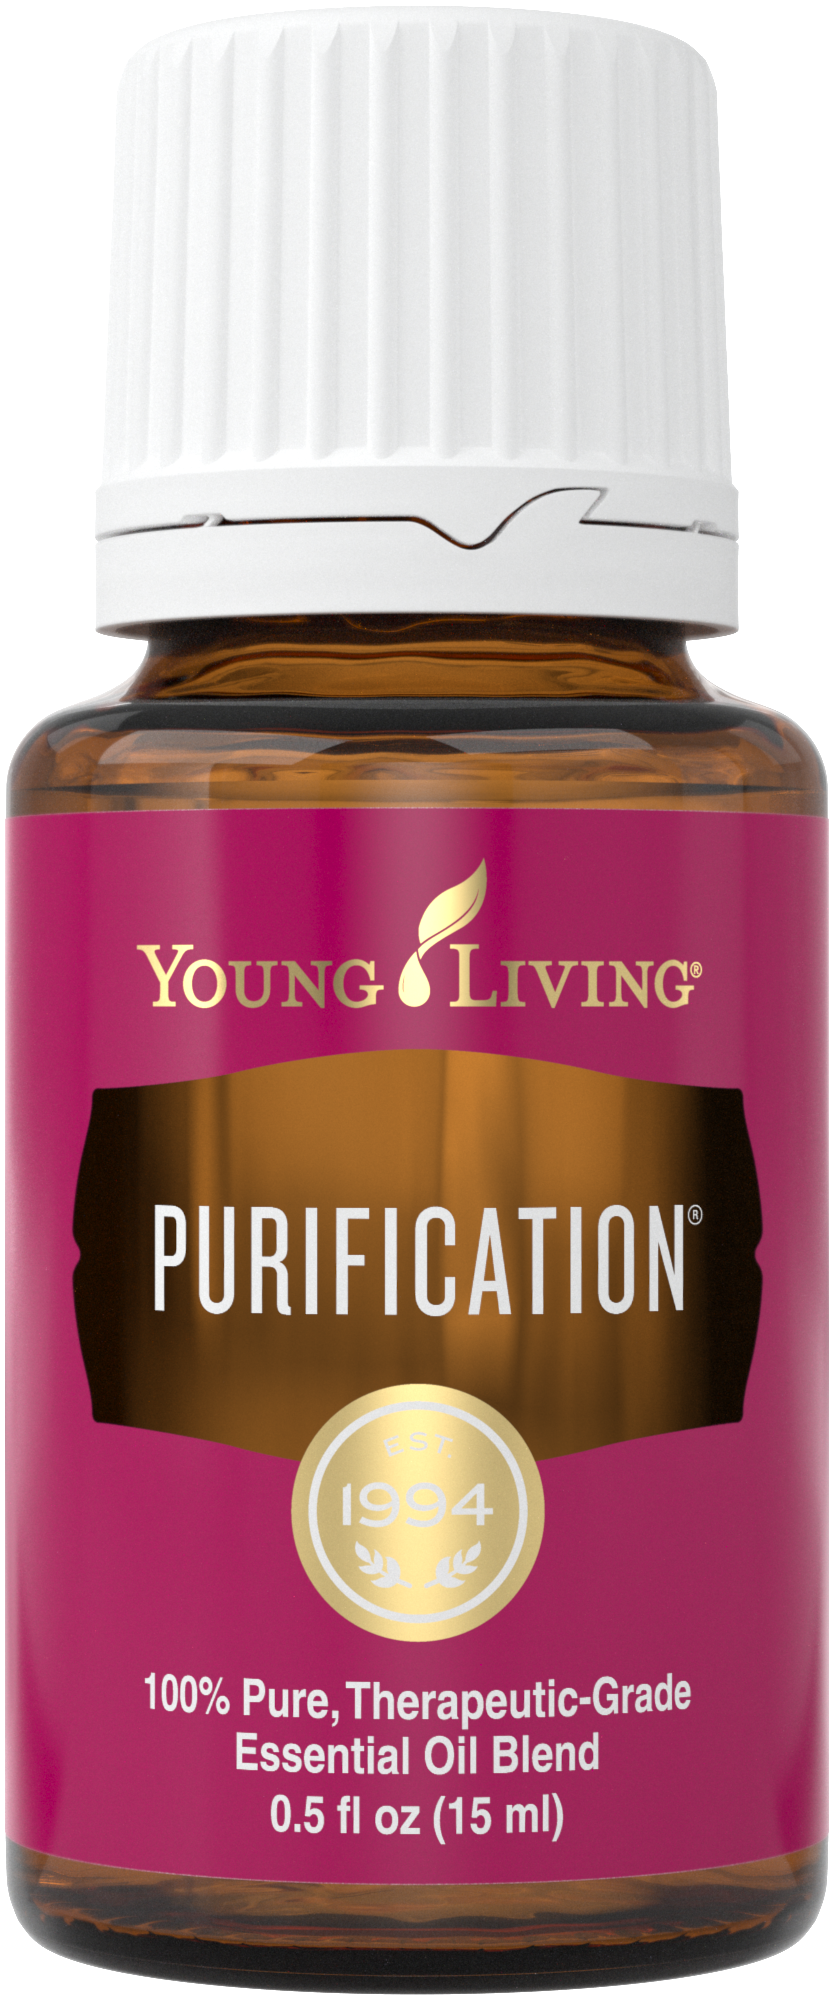 purification_15ml_silo_us_2016_24527180645_o.png